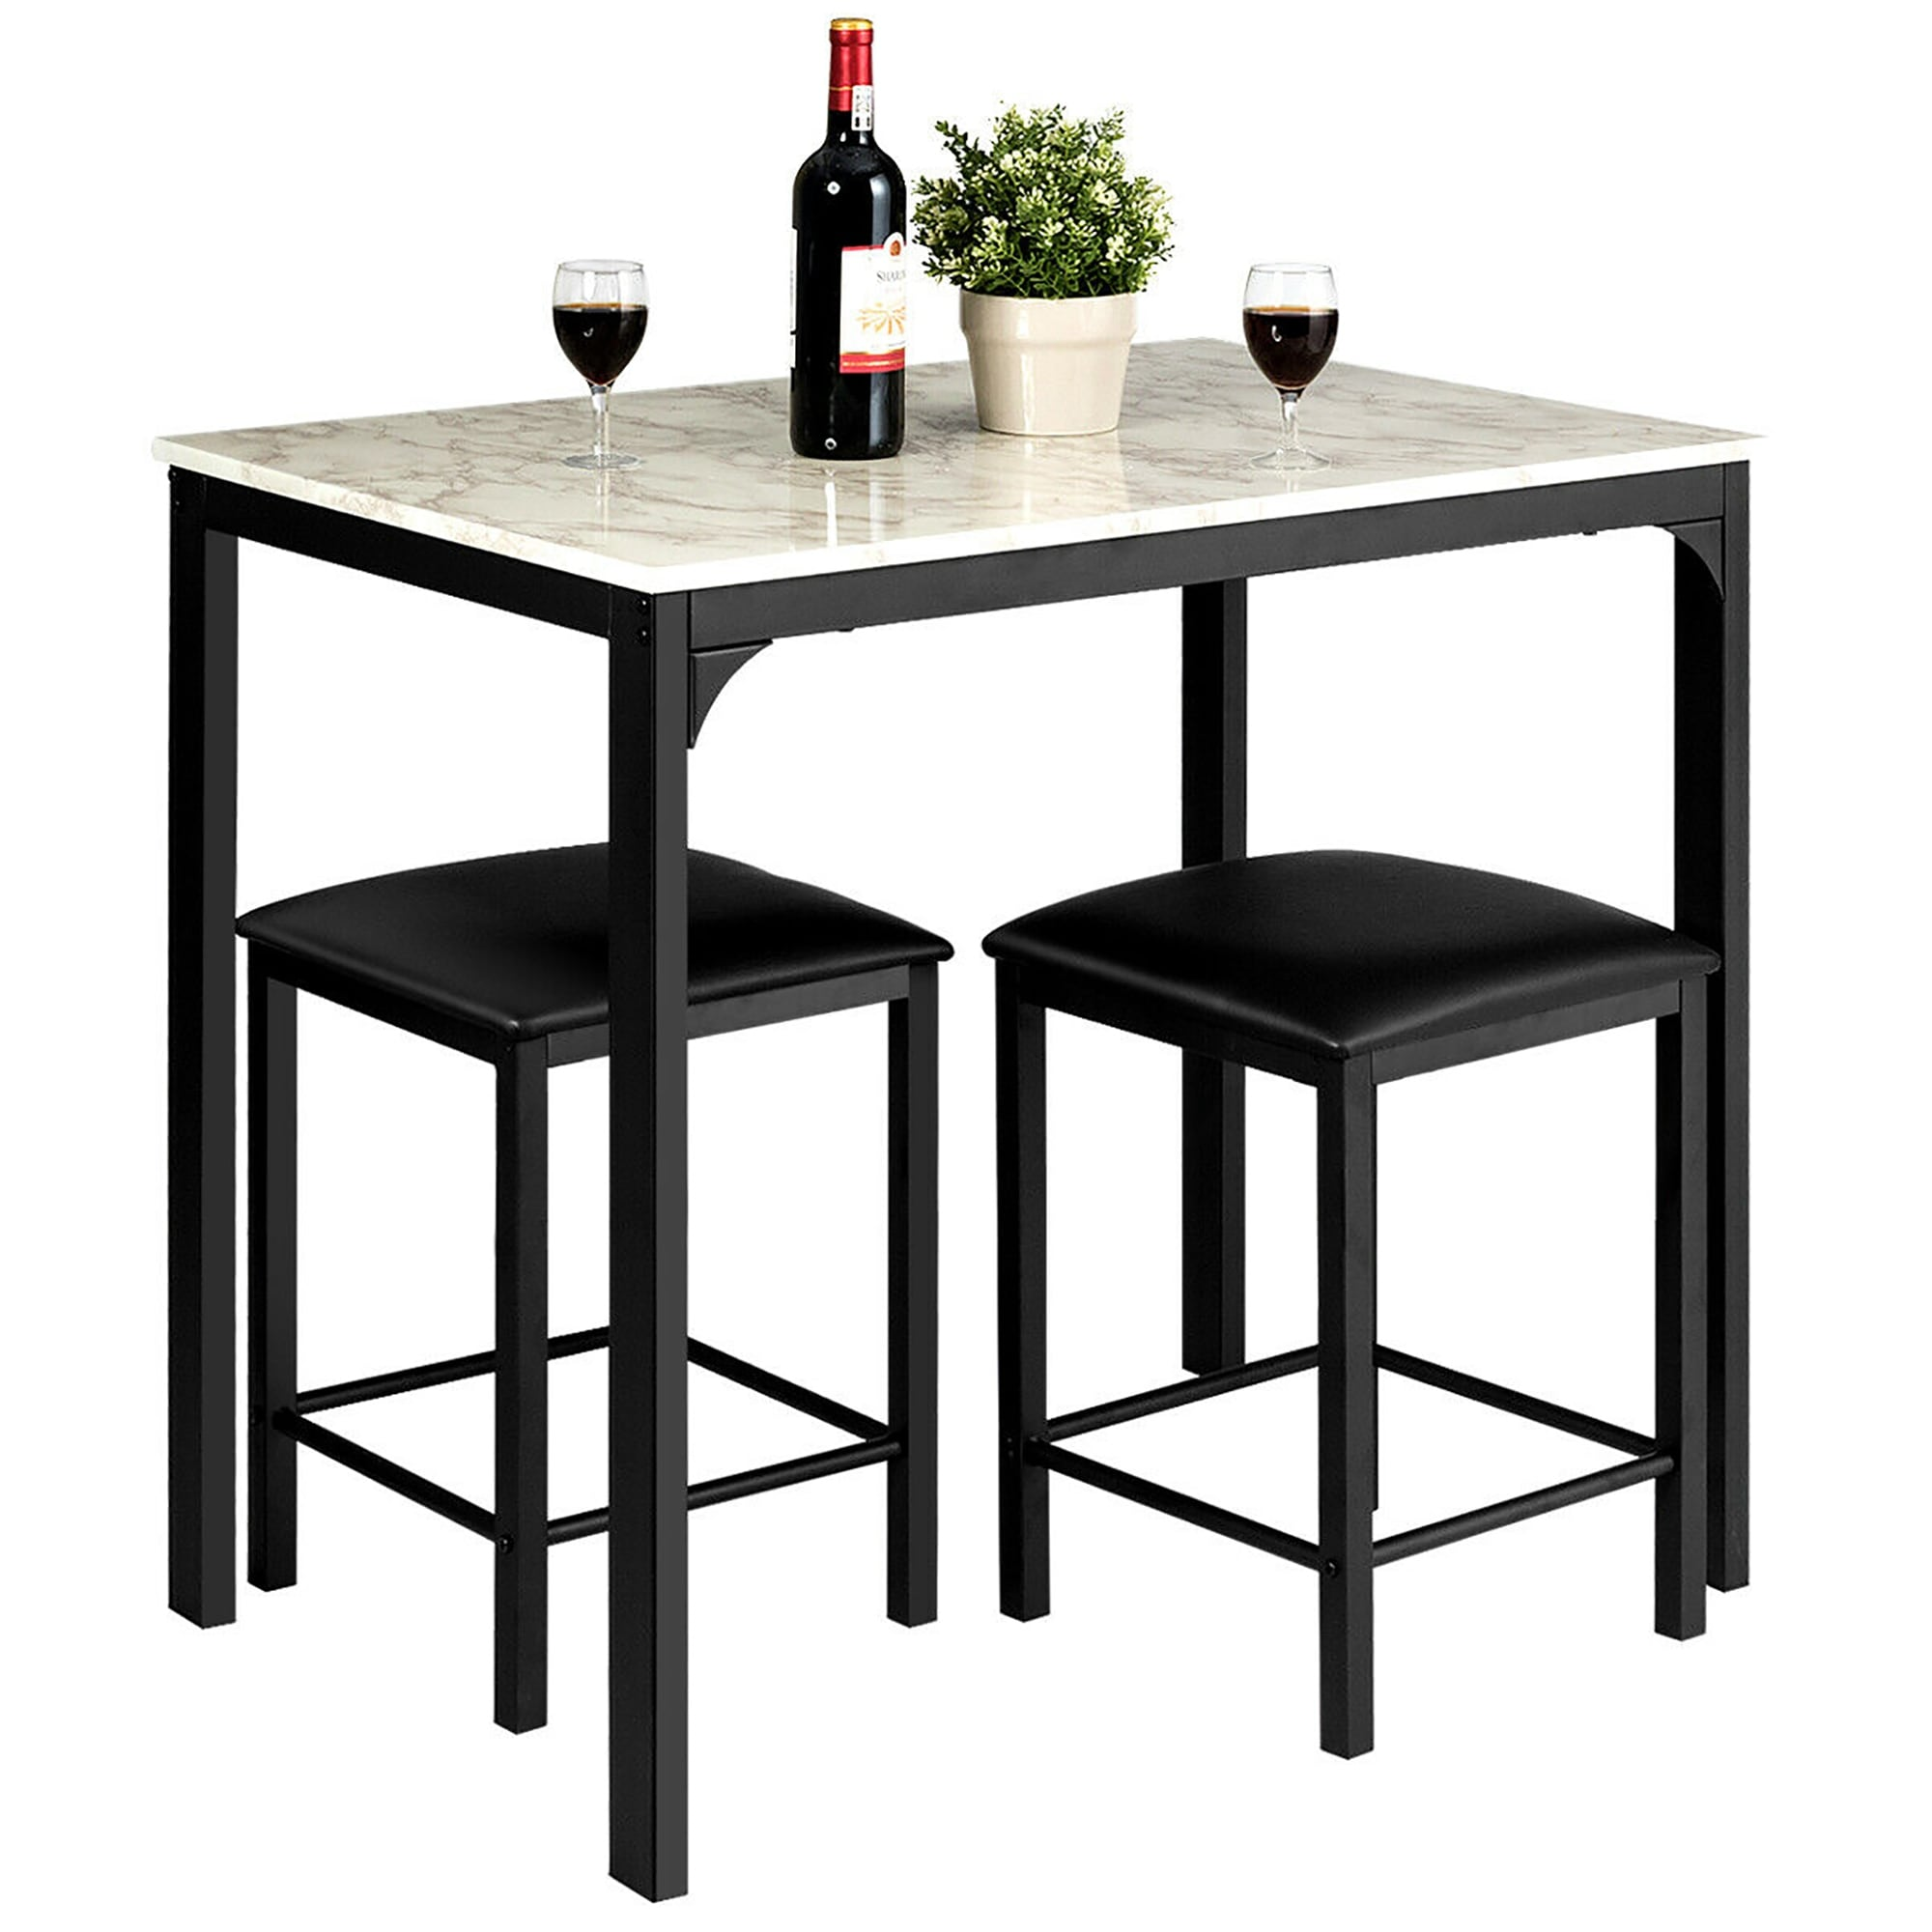 9 Piece Counter Height Dining Set Faux Marble Table 9 Chairs Kitchen